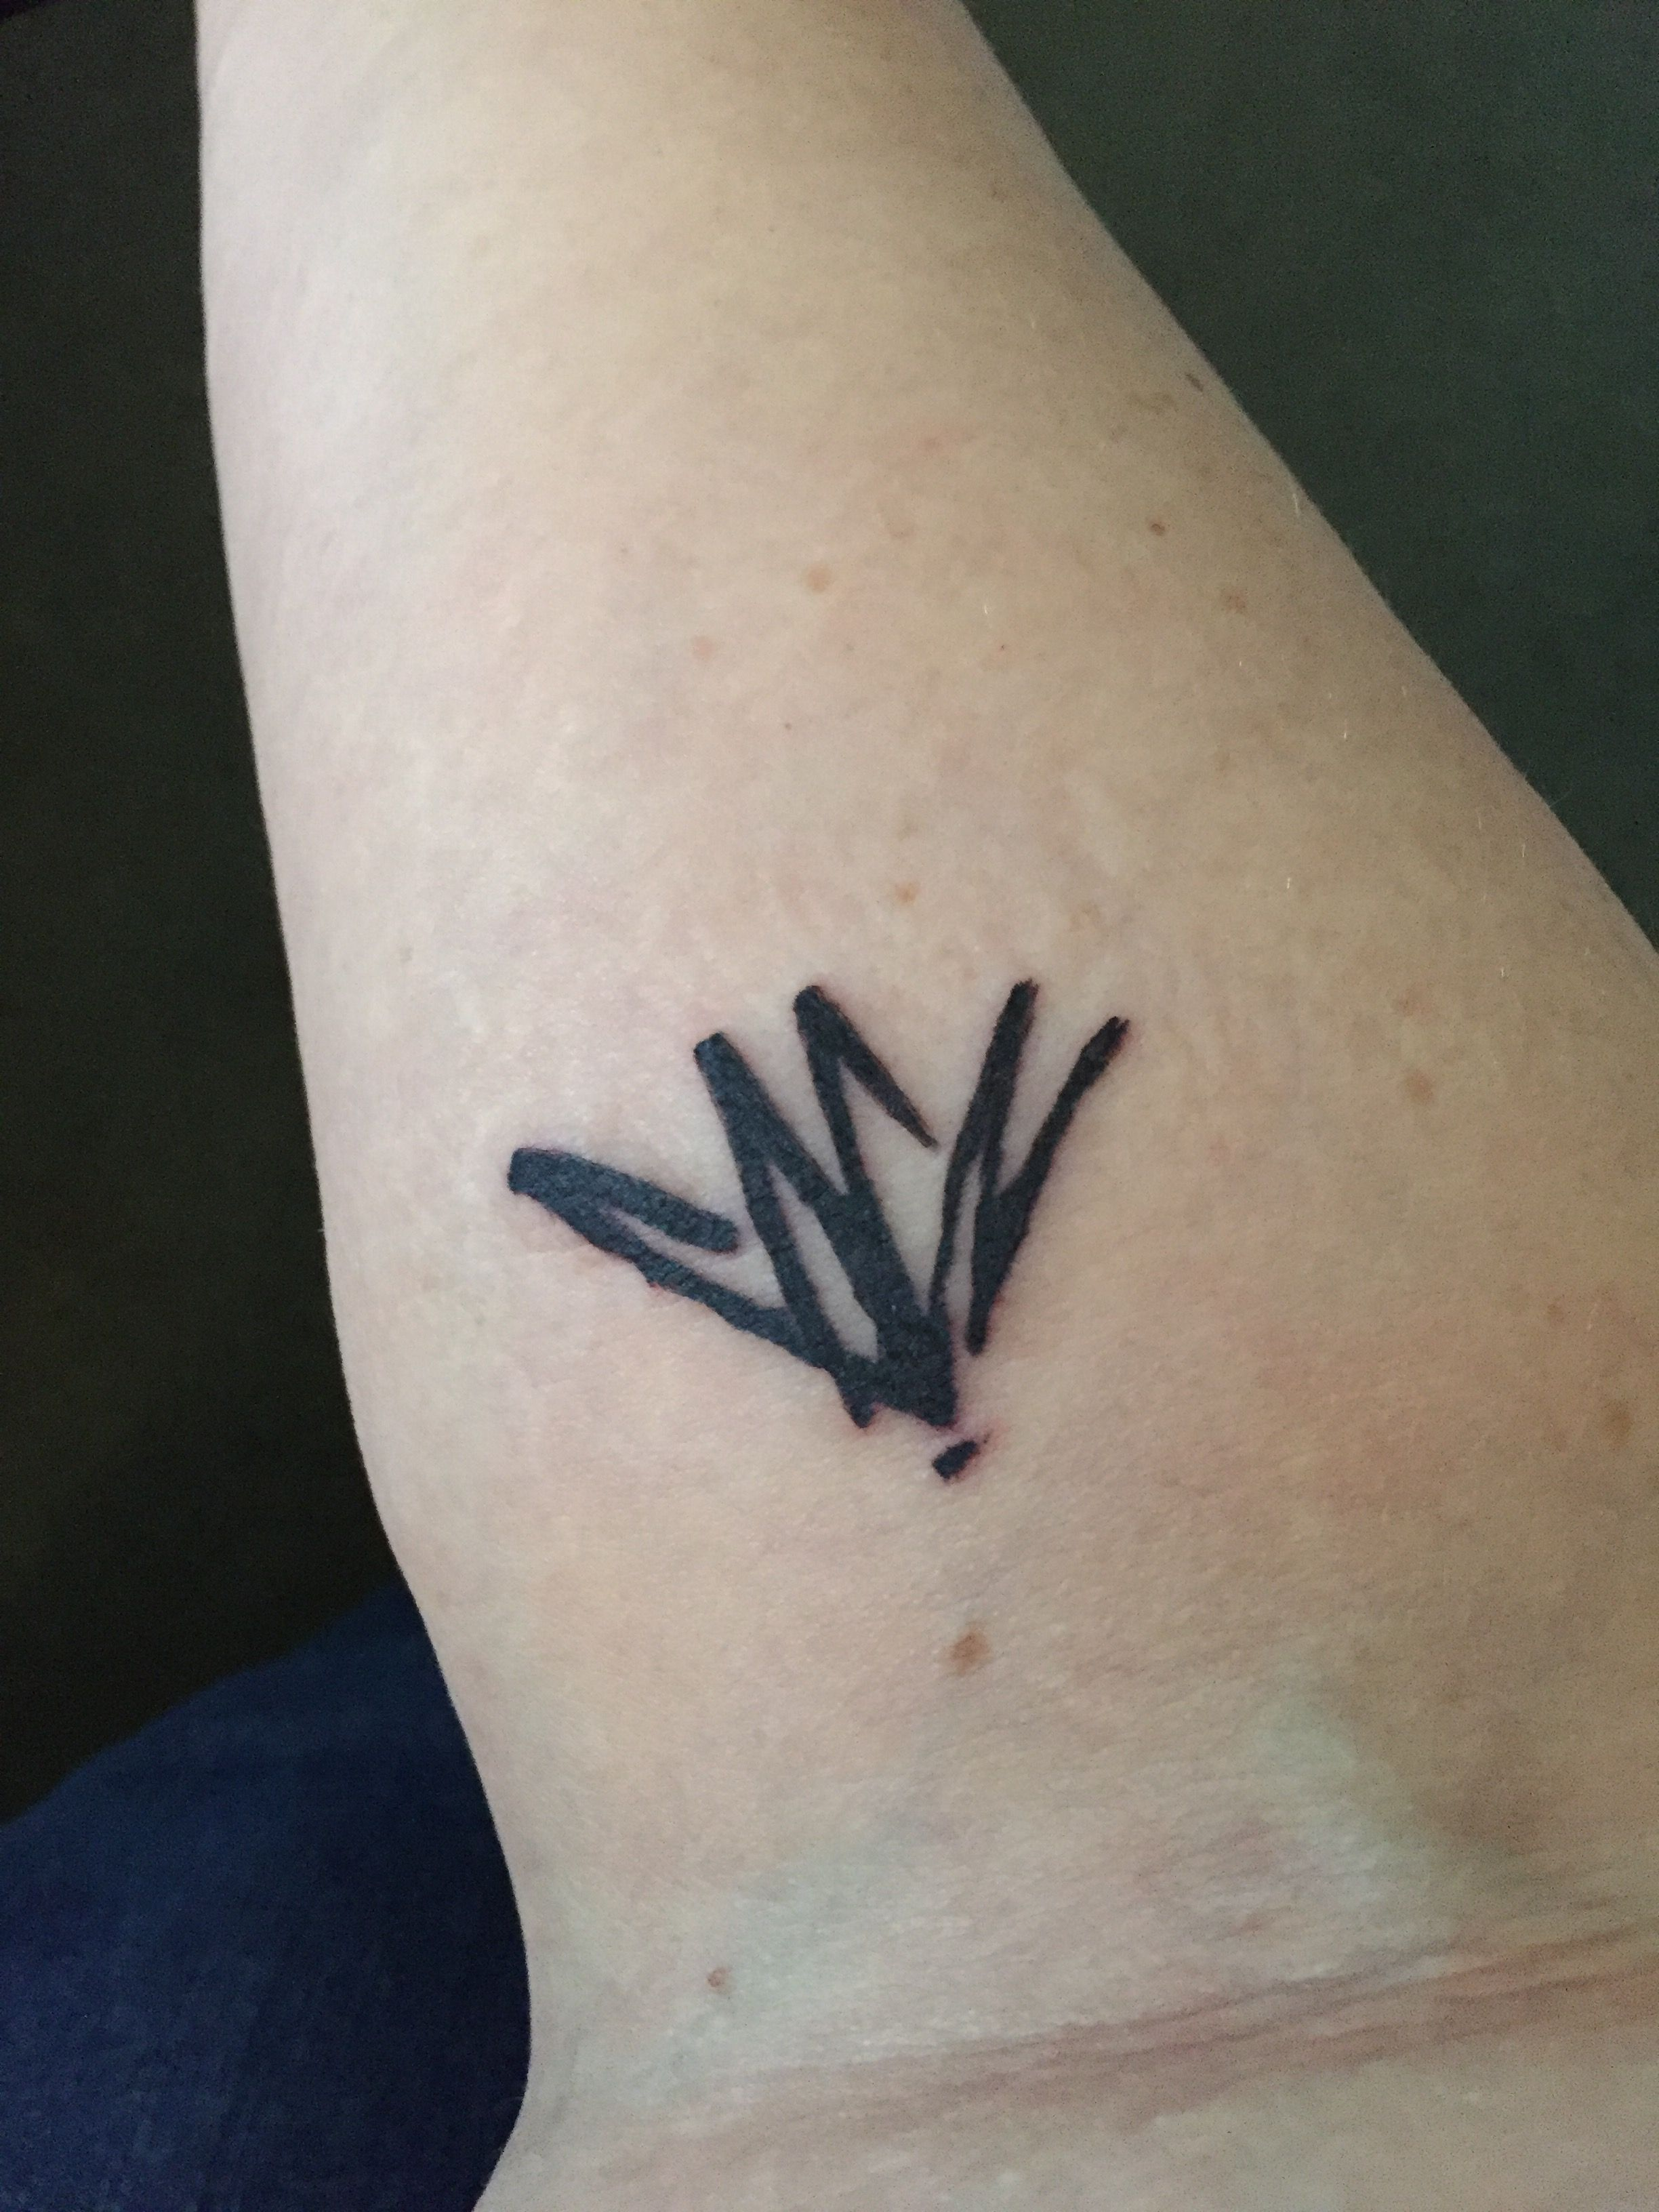 Gallery images and information soundgarden badmotorfinger tattoo - My Very First Tattoo Chris Cornell S Signature A Fitting Tribute To A Musician